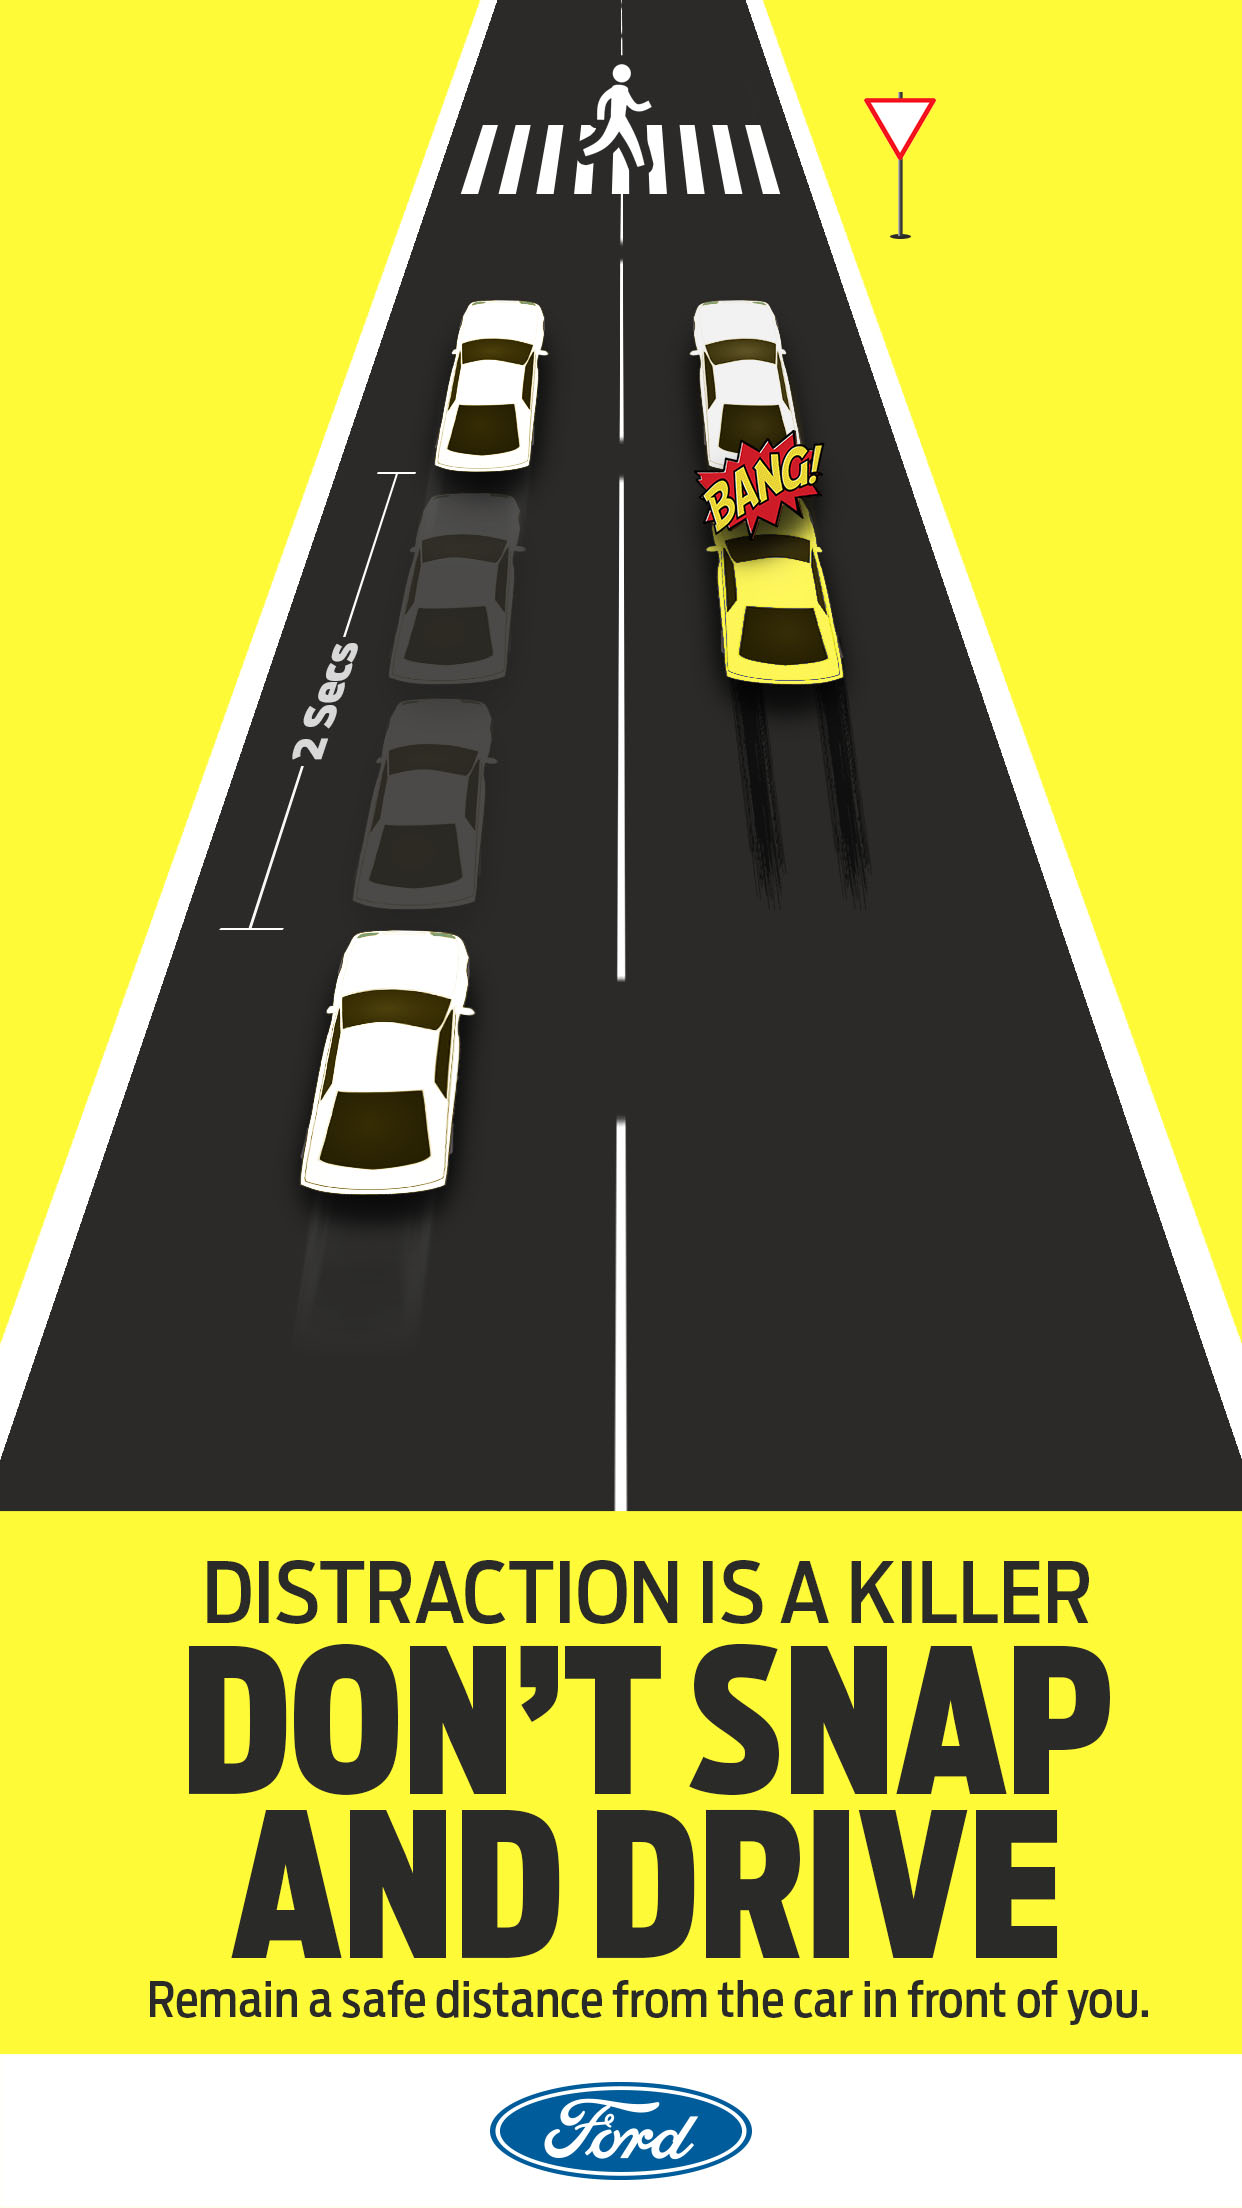 Remain a safe distance from the car infront of you